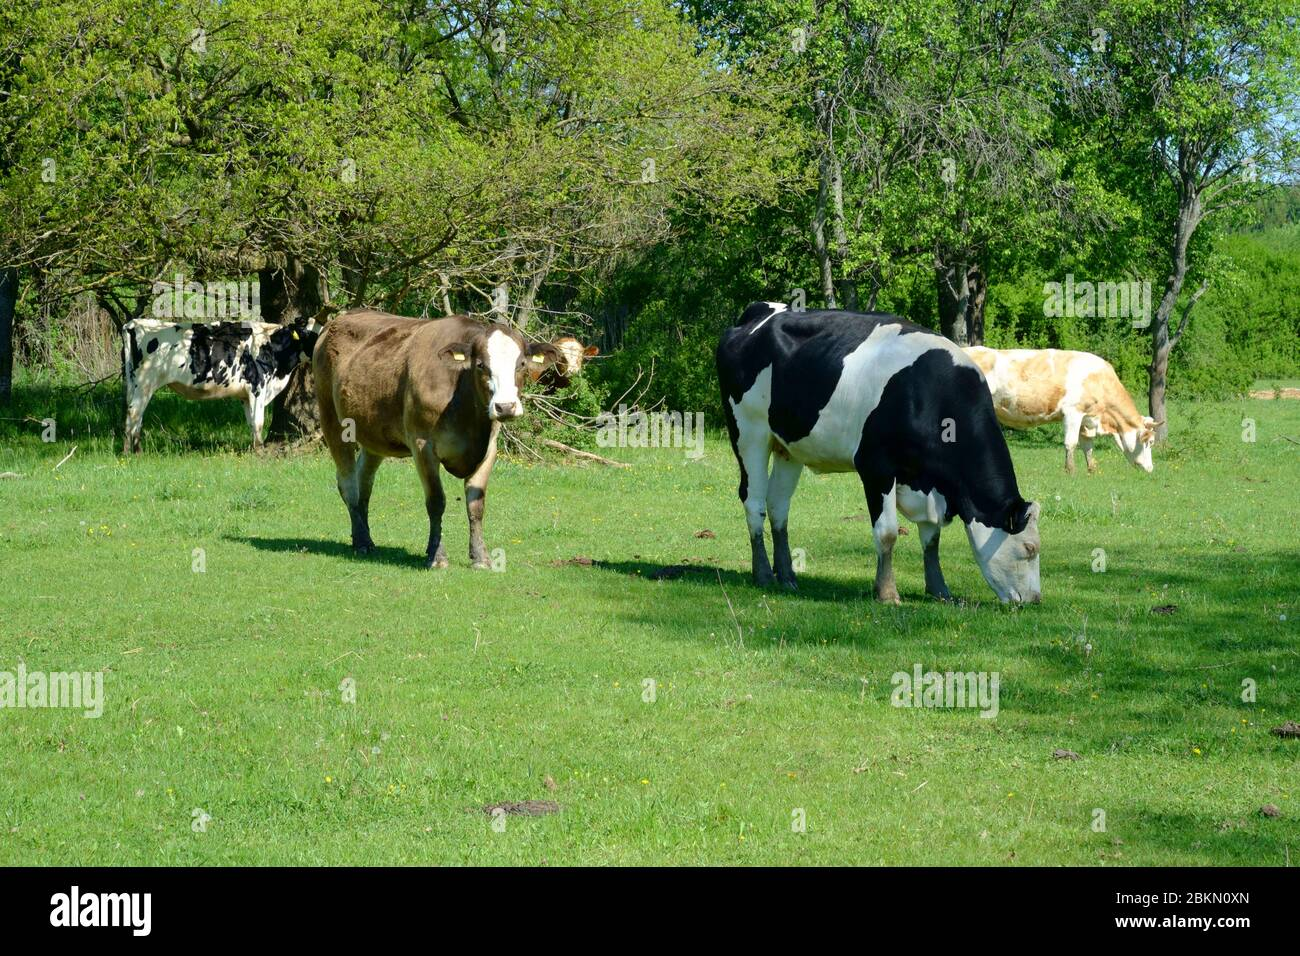 cows grazing in large field in a rural countryside area zala county hungary Stock Photo